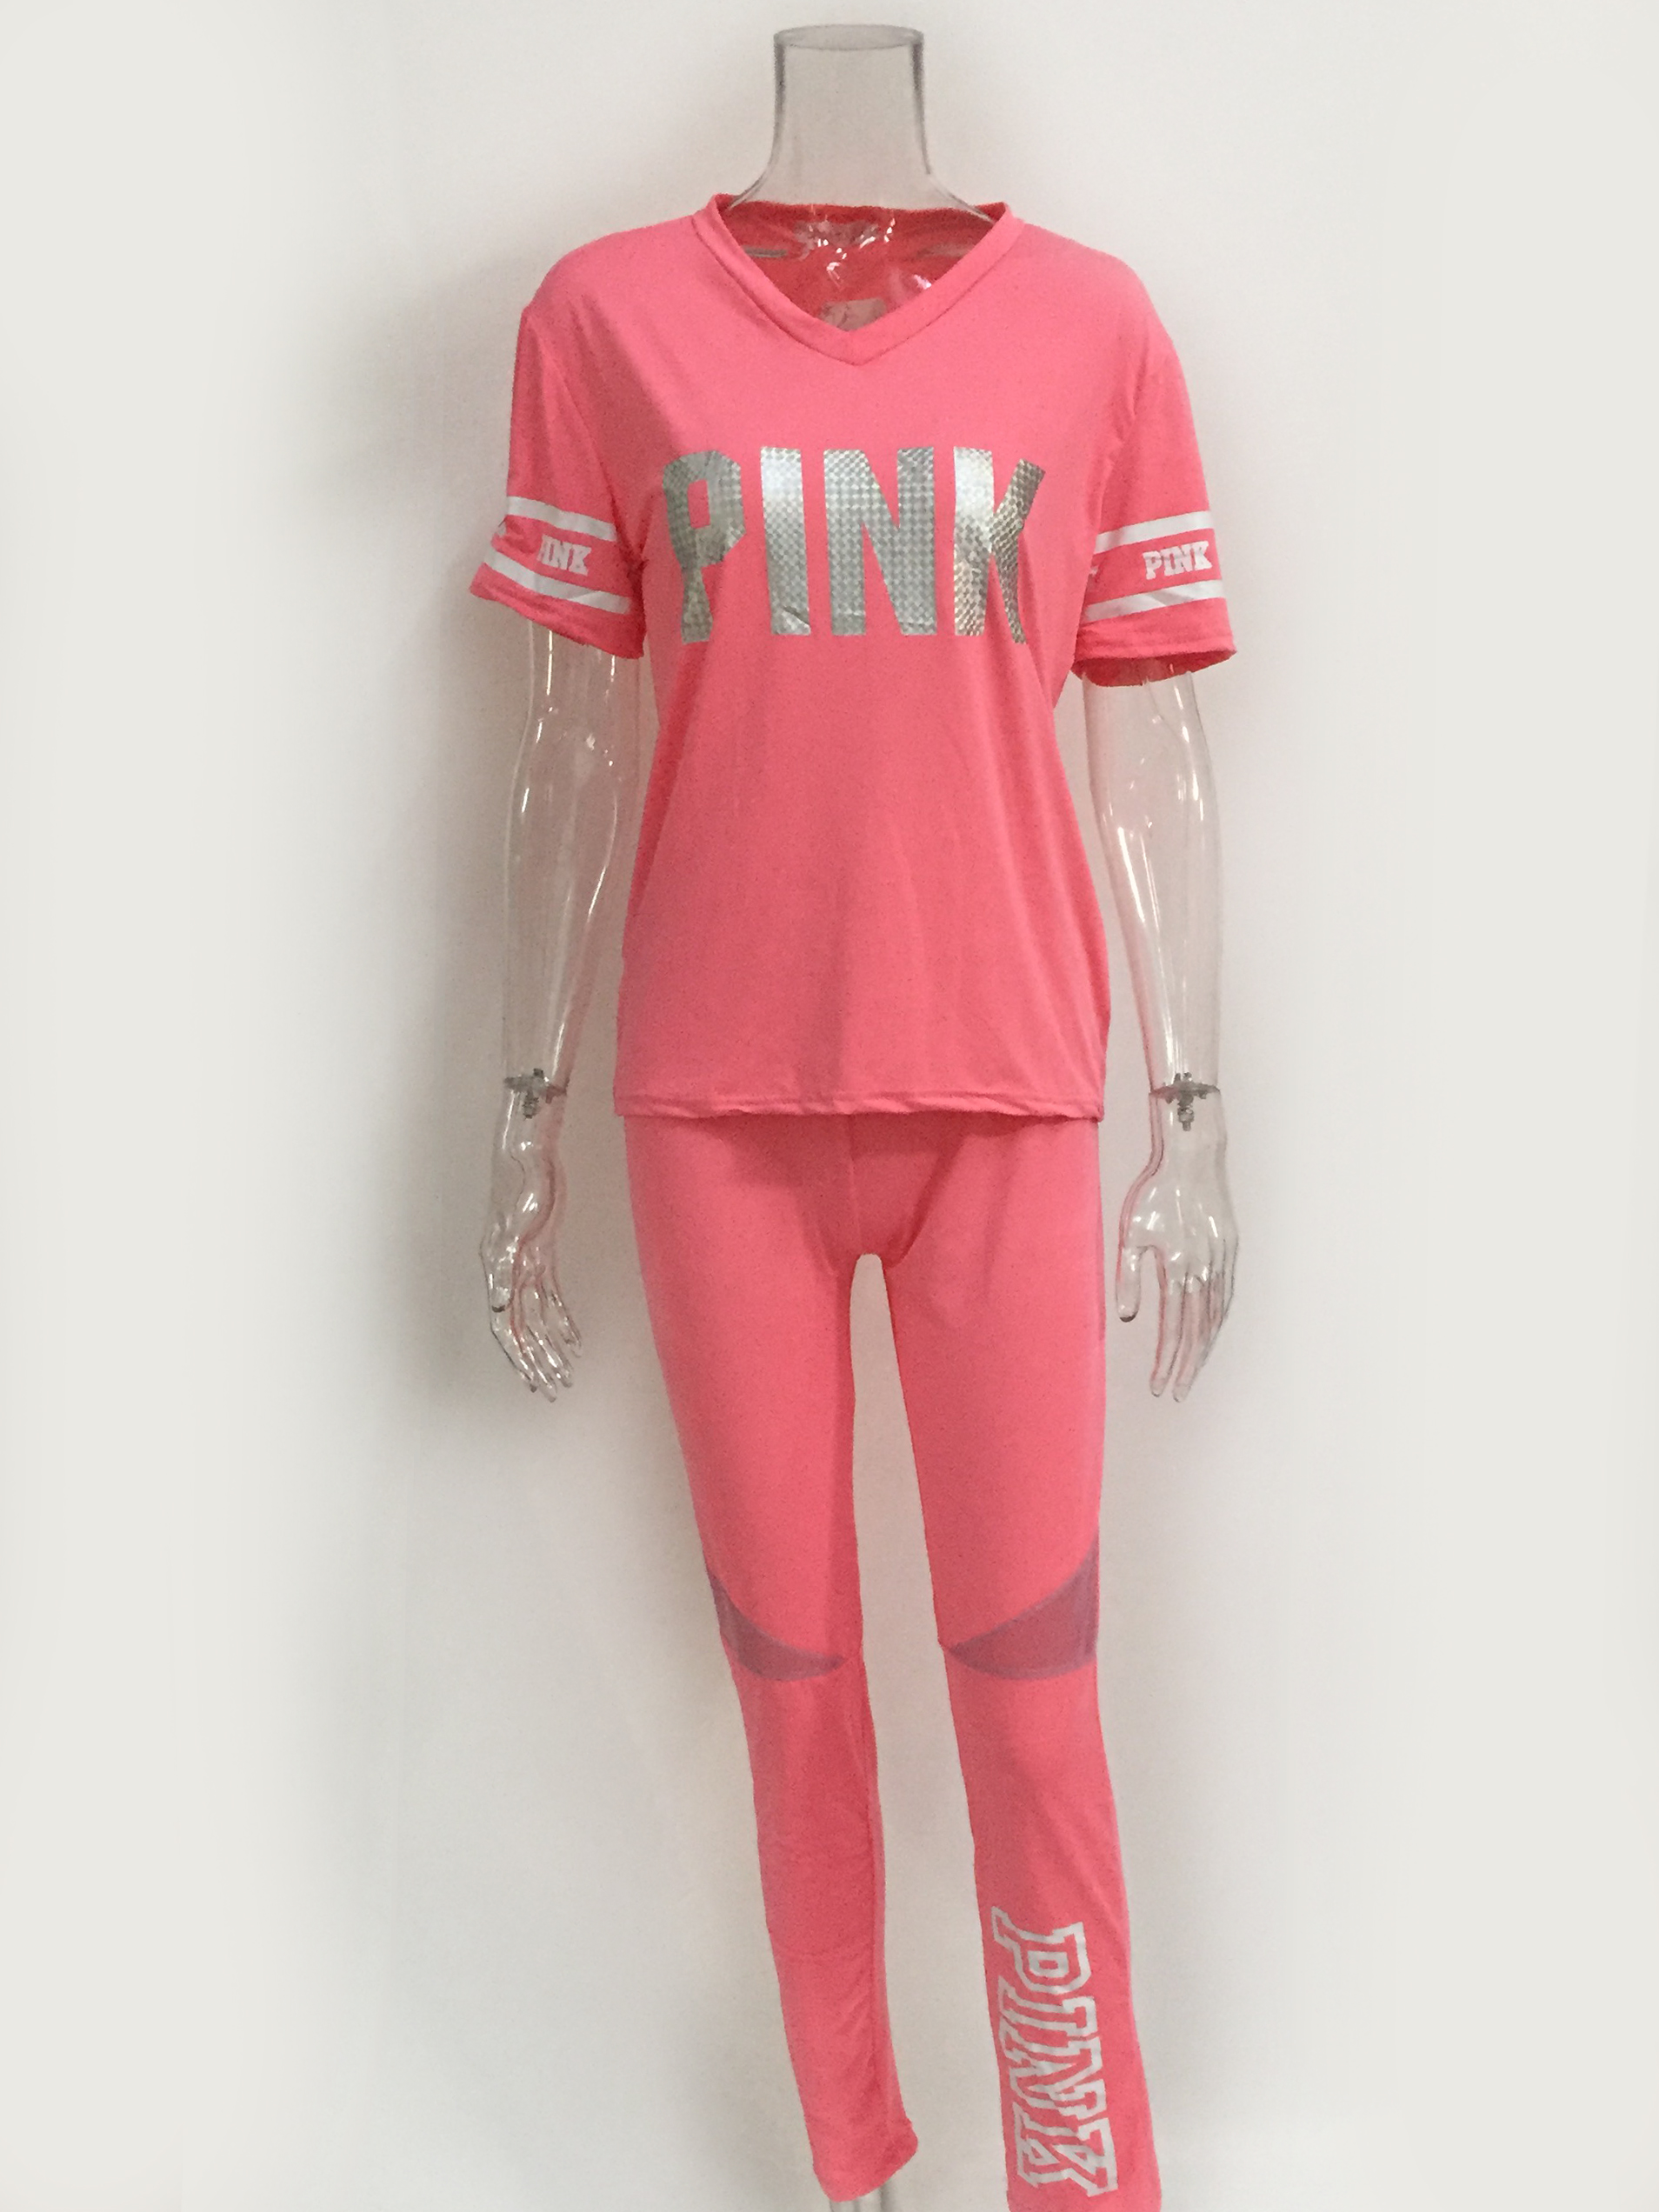 Women's 2 Piece Pink Letter Outfits Tracksuits V Neck Tops And Skinny Pants Jog Set Sweat Suits Conjunto Feminino Casual Sets